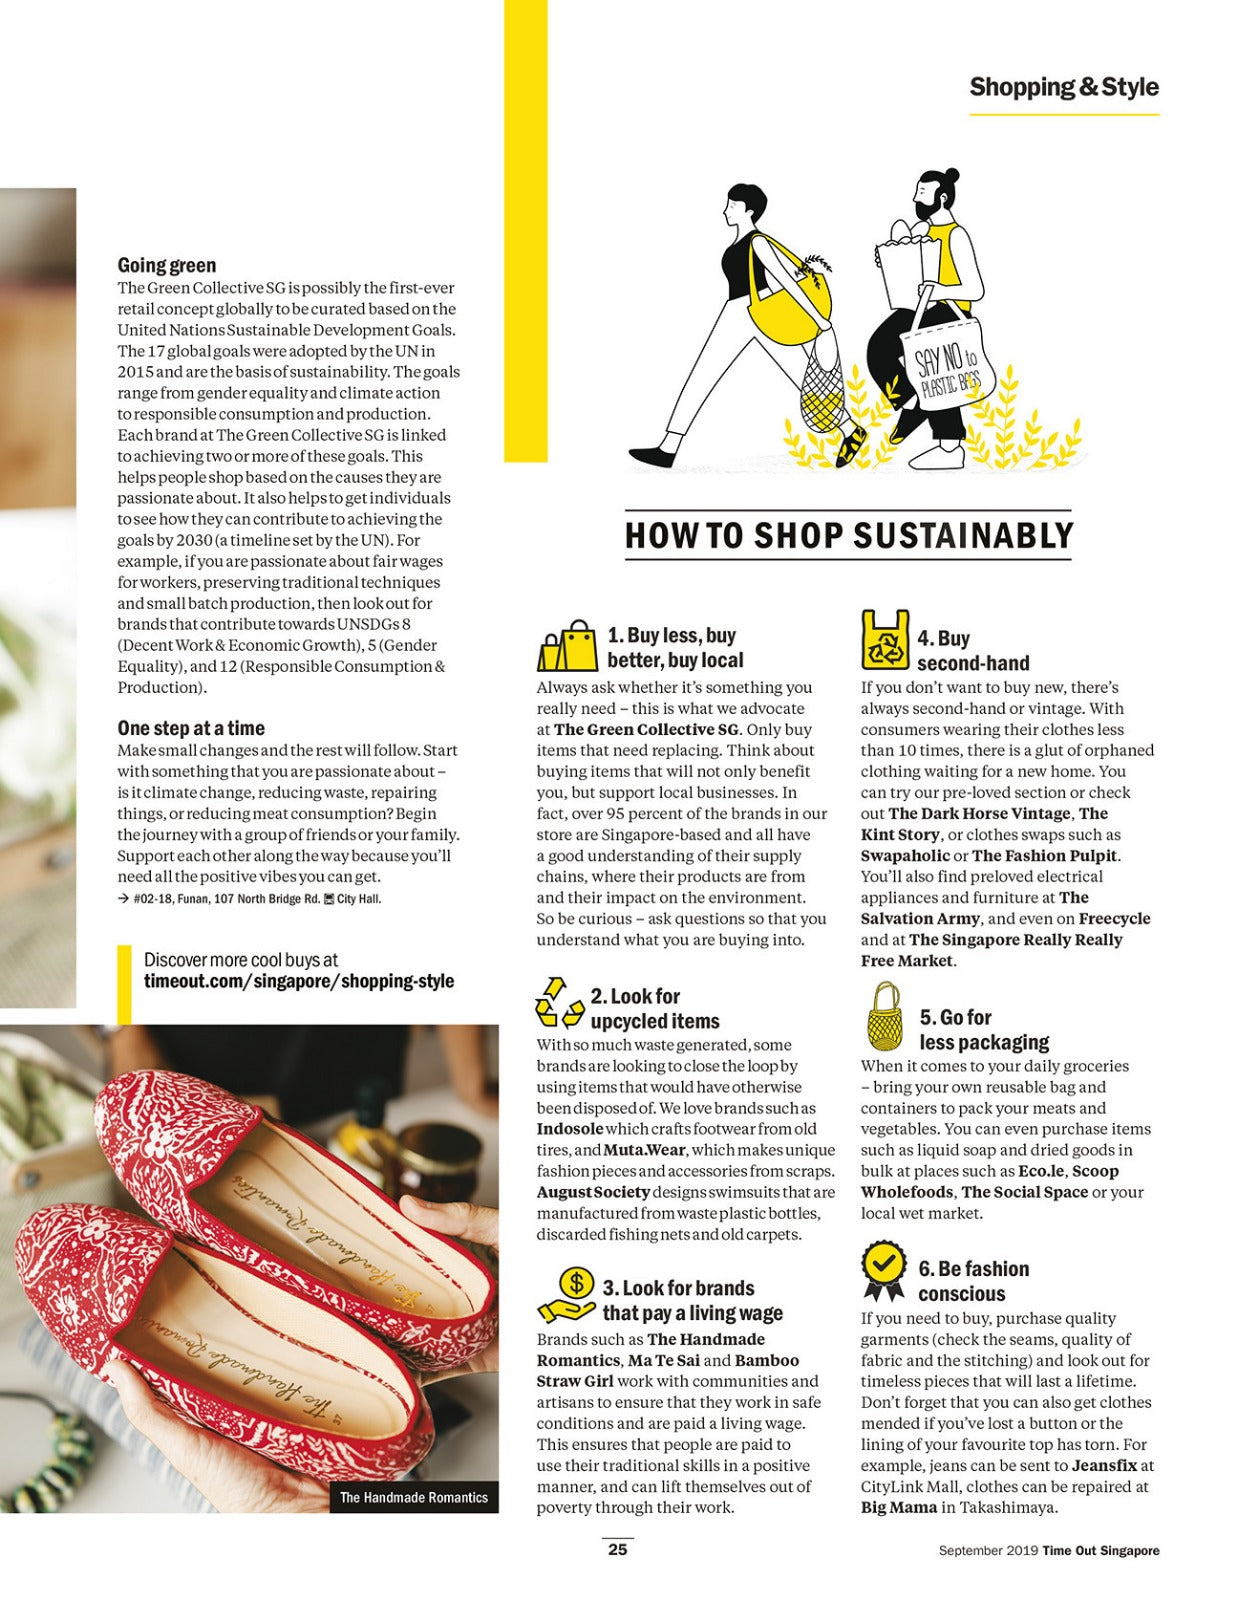 Time Out Singapore Sustainable Shopping Guide page 3